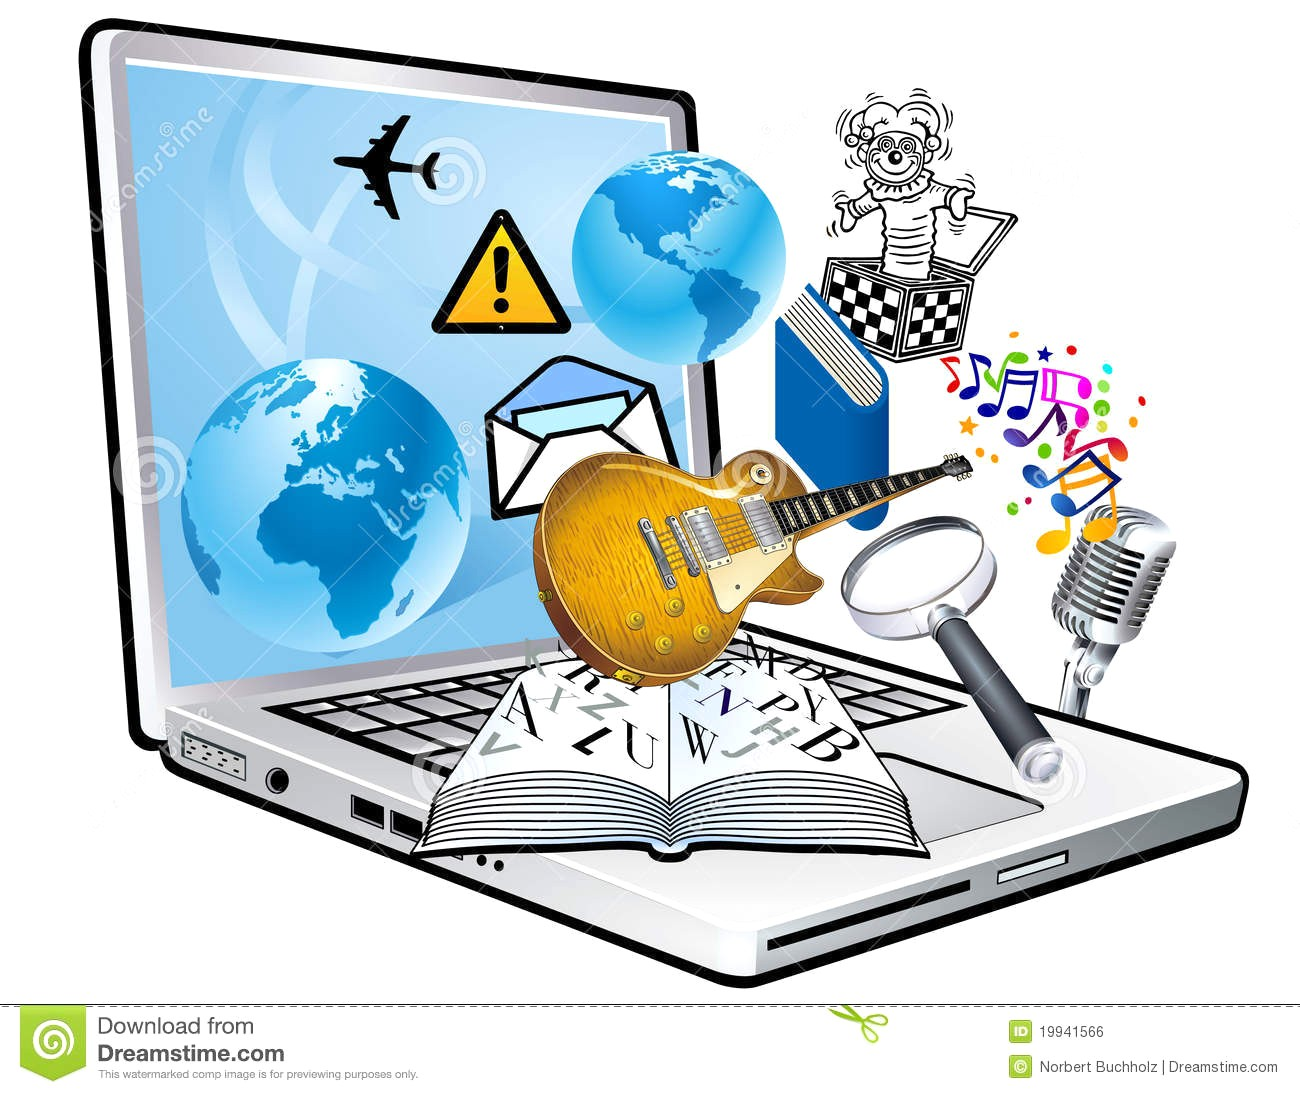 Information technology clipart 7 » Clipart Station.